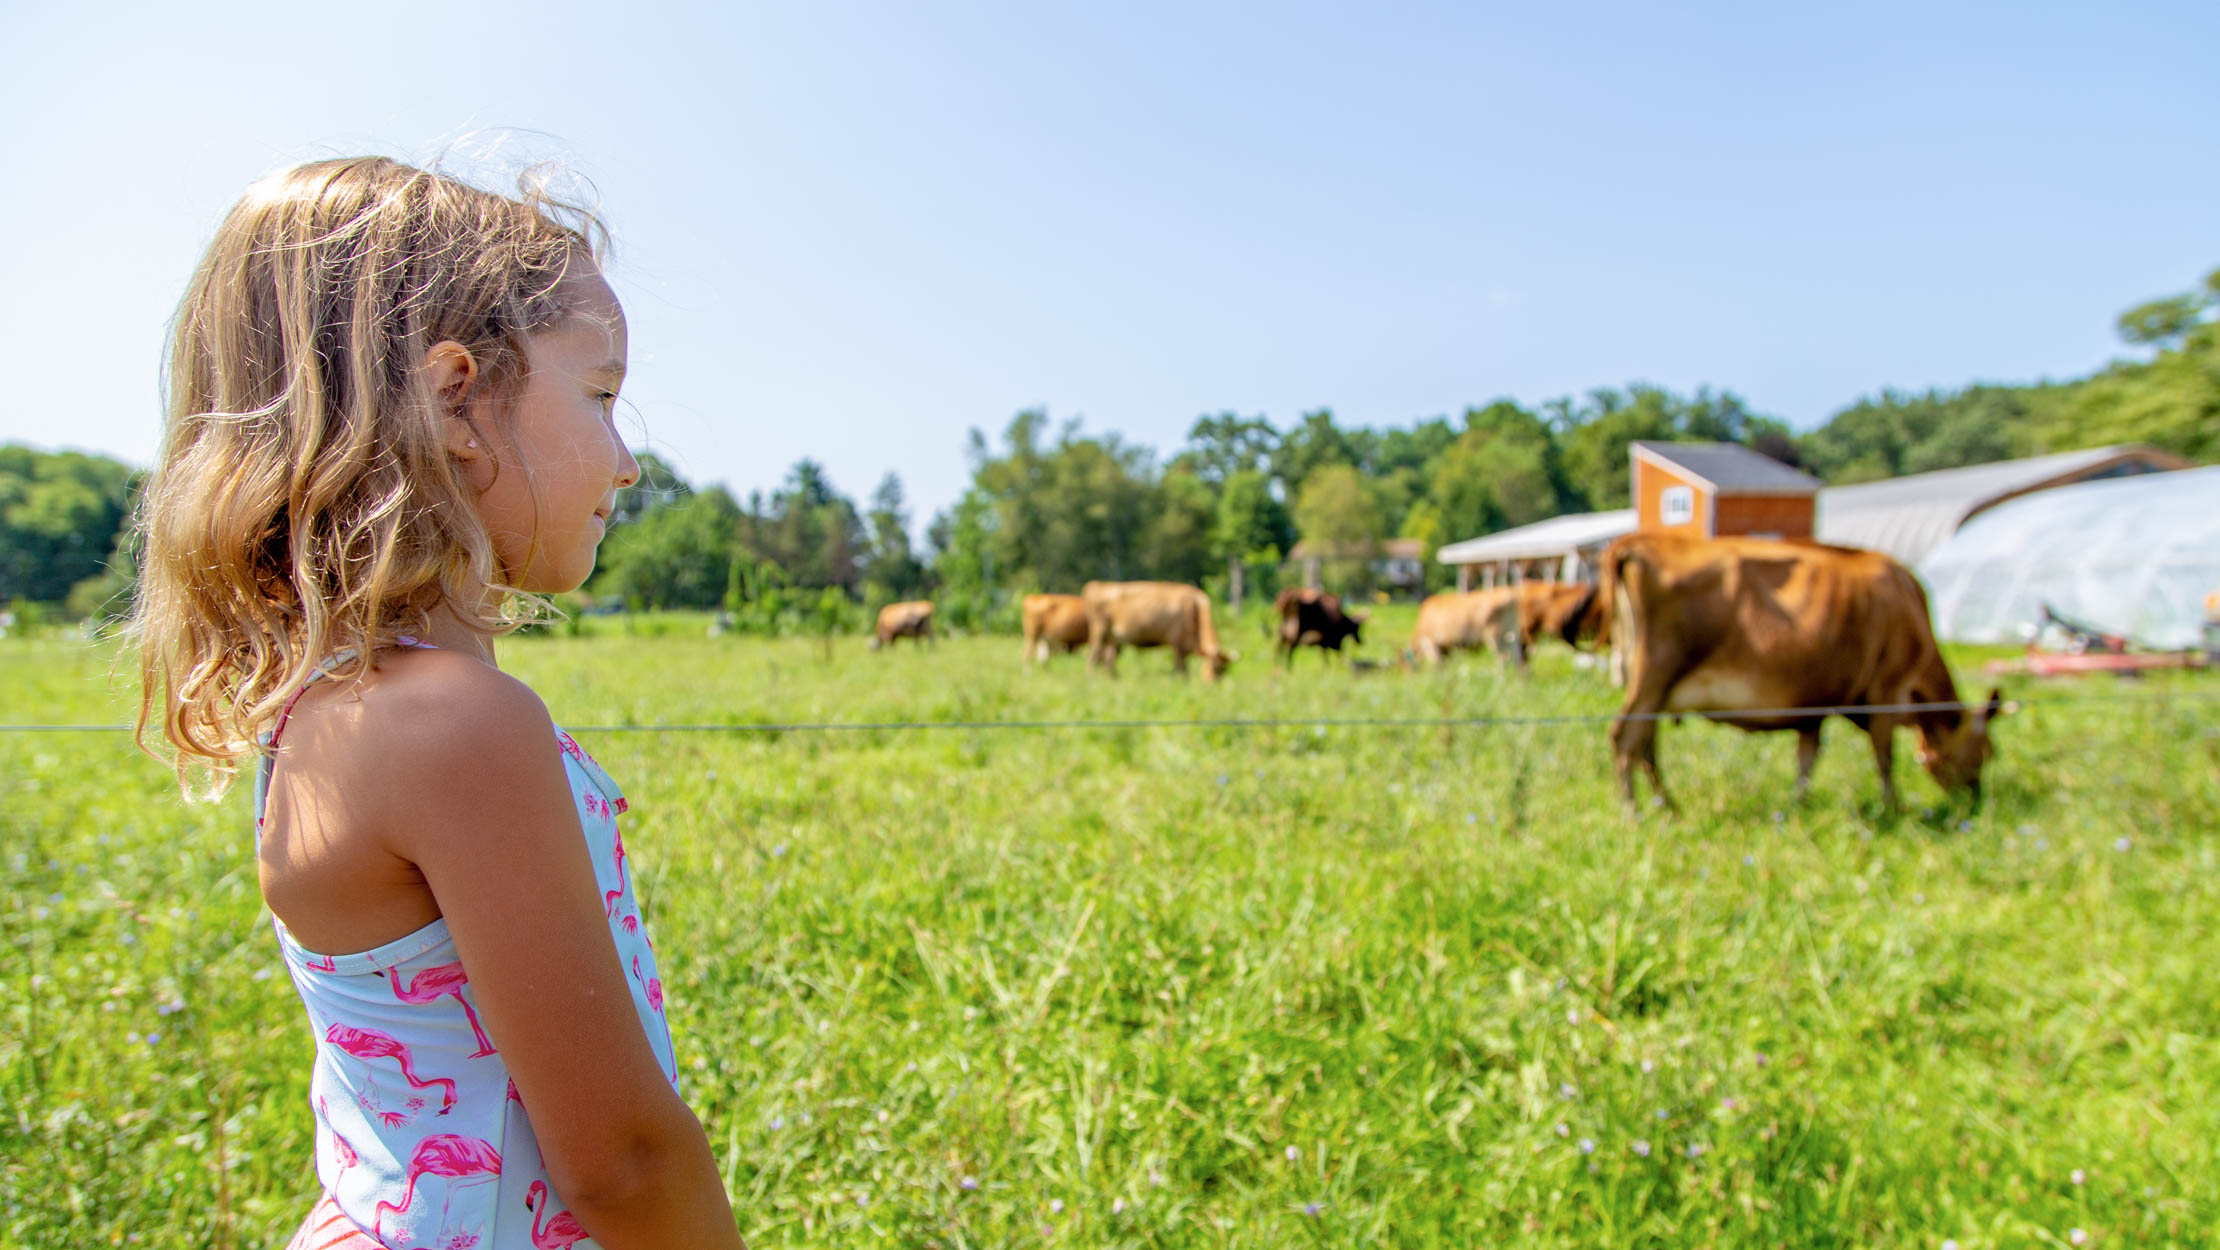 Camper looking at a field of cows